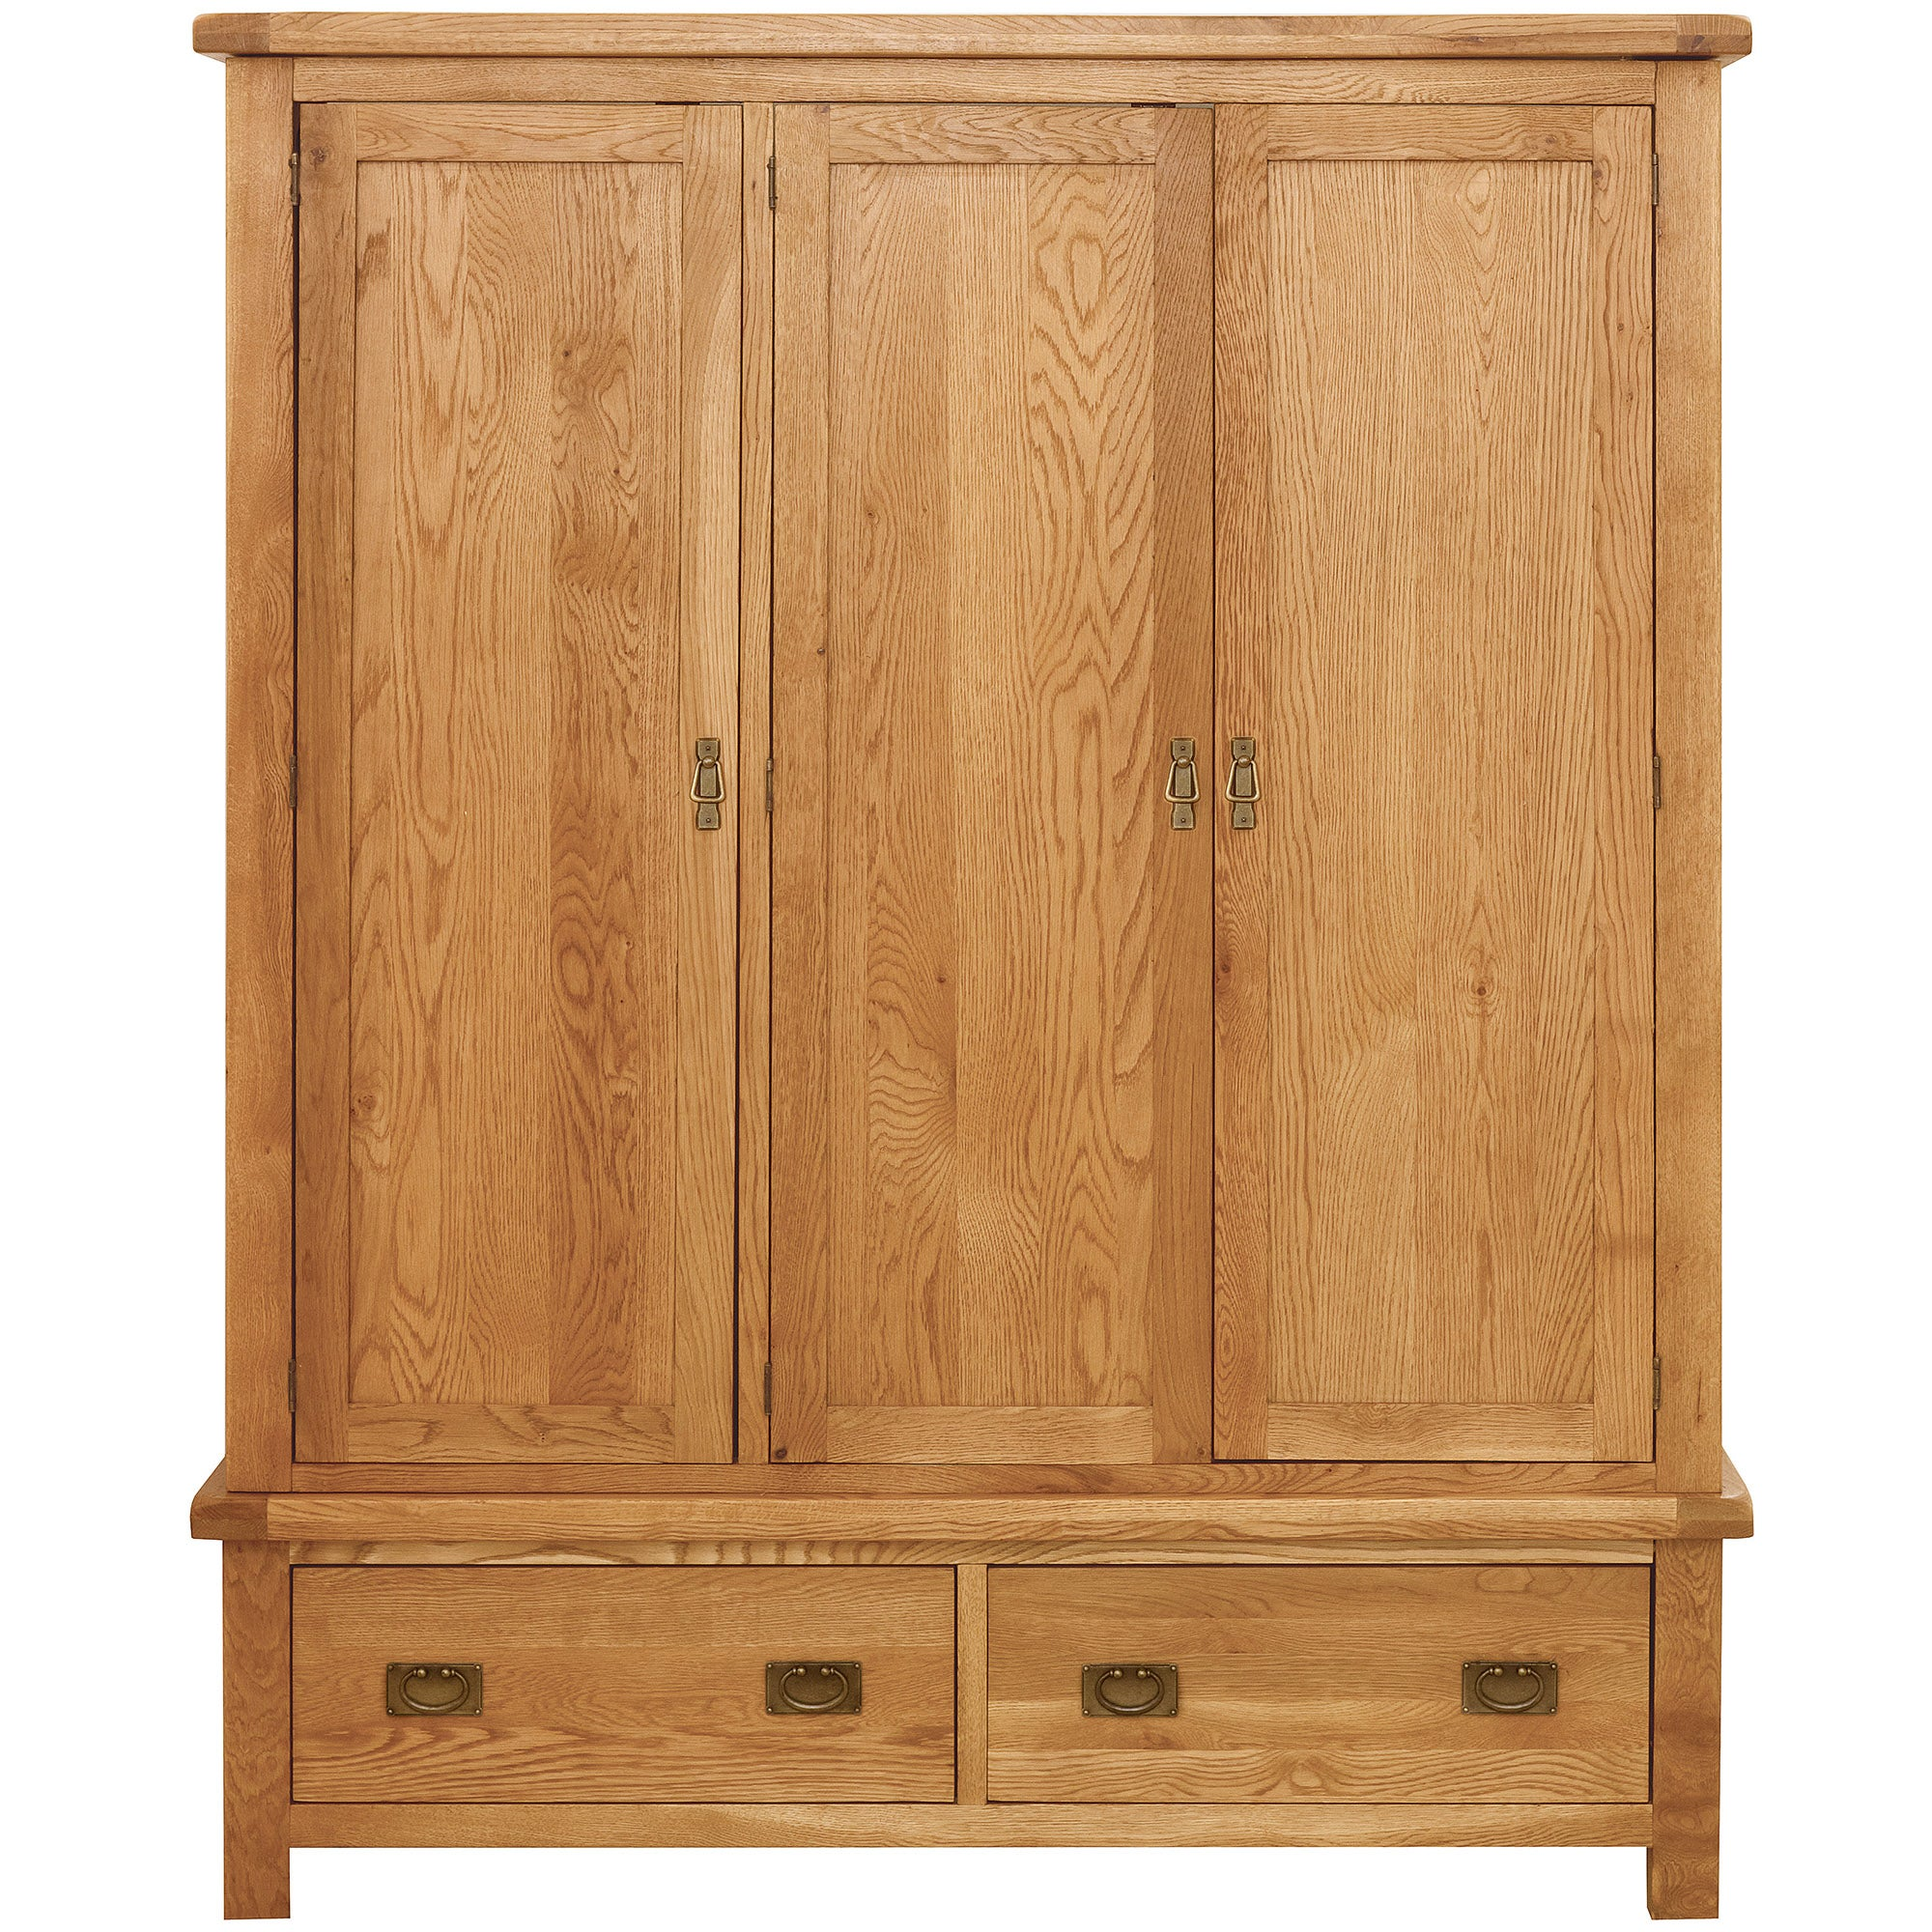 Photo of Dorchester oak triple wardrobe light brown / natural